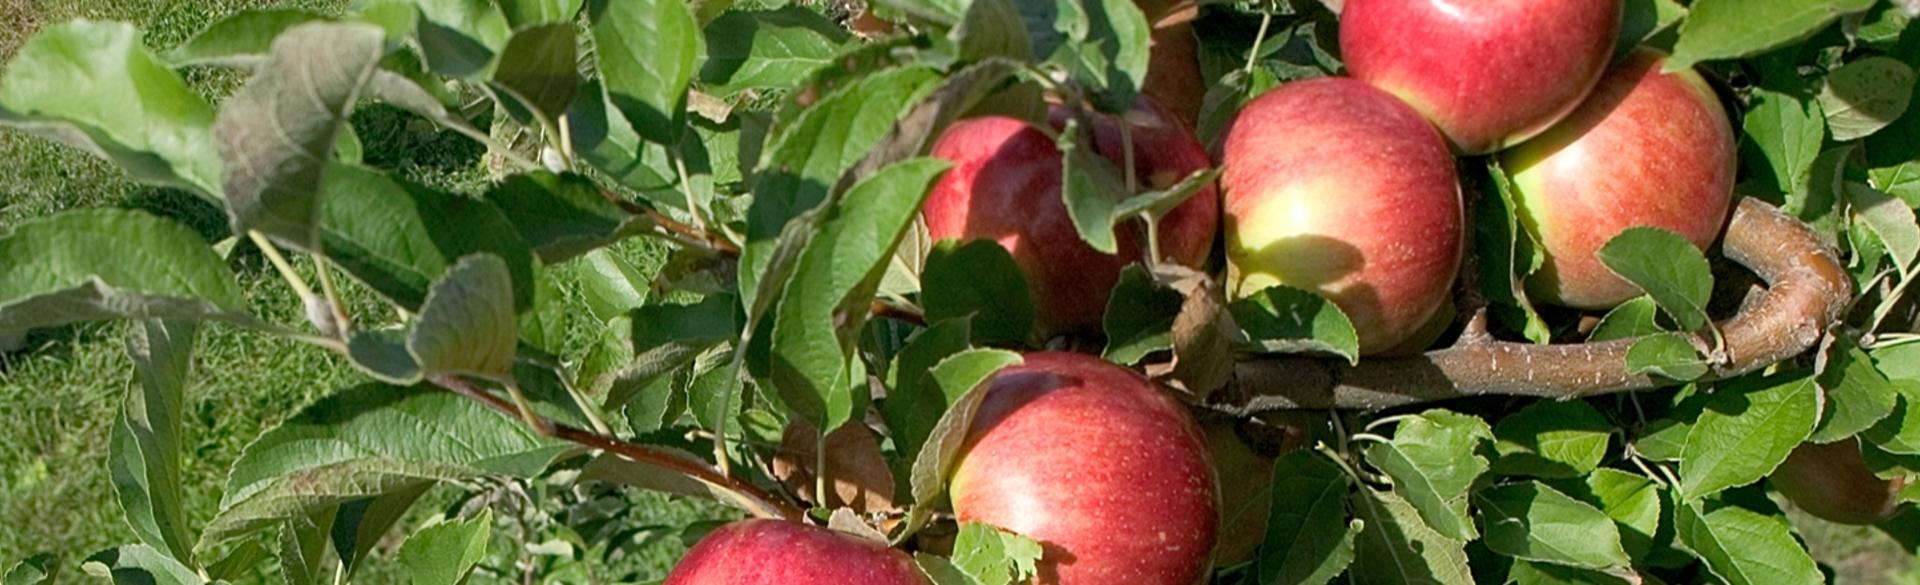 Apple Cider Locations Near Grand Rapids